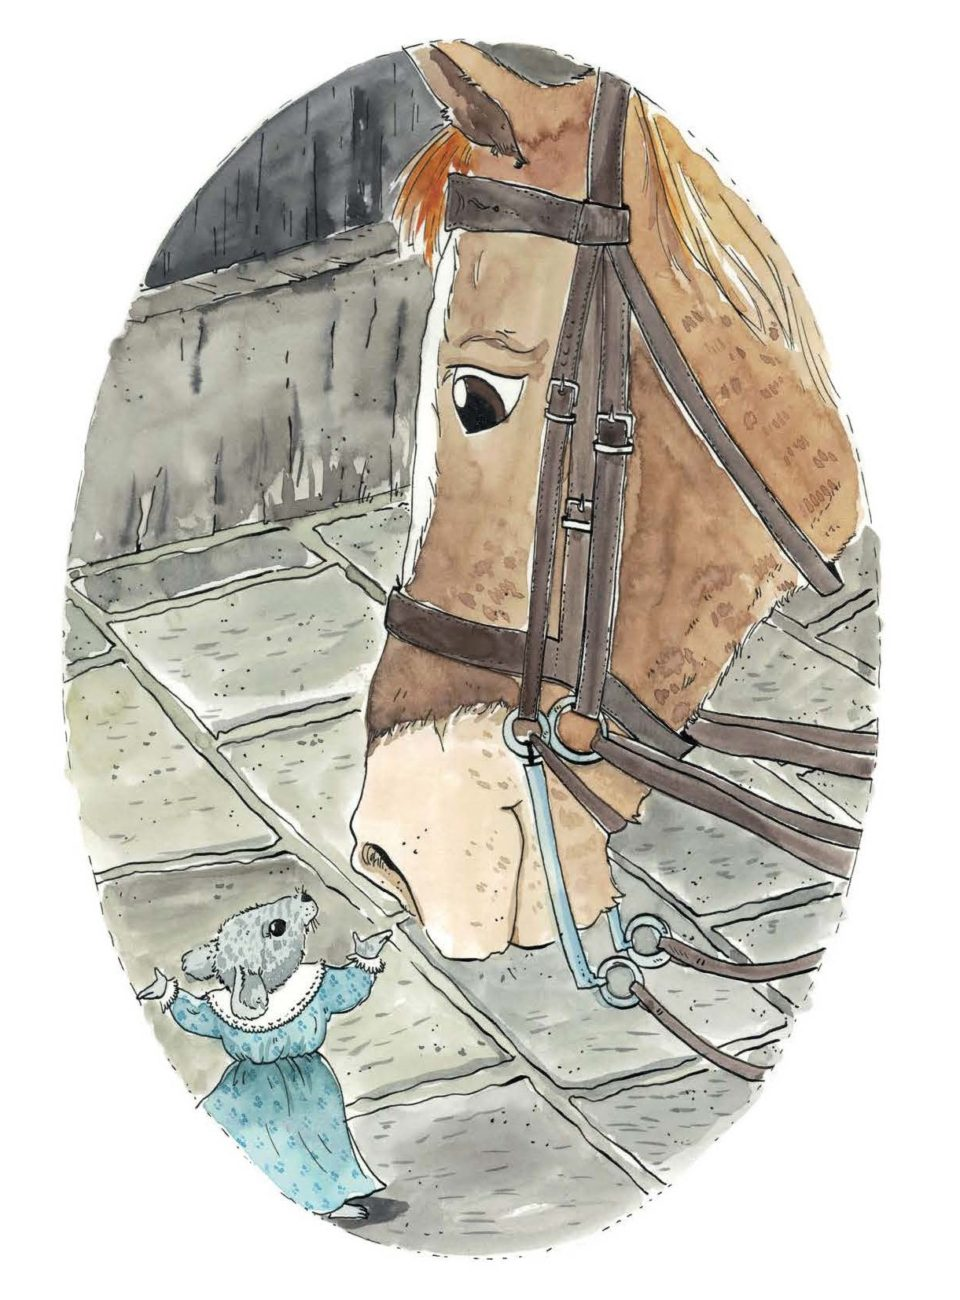 Victoria, a small grey mouse, wears a blue dress and meets Gerald the brown horse. This picture will be shown at the Moon Lane CPID Festival